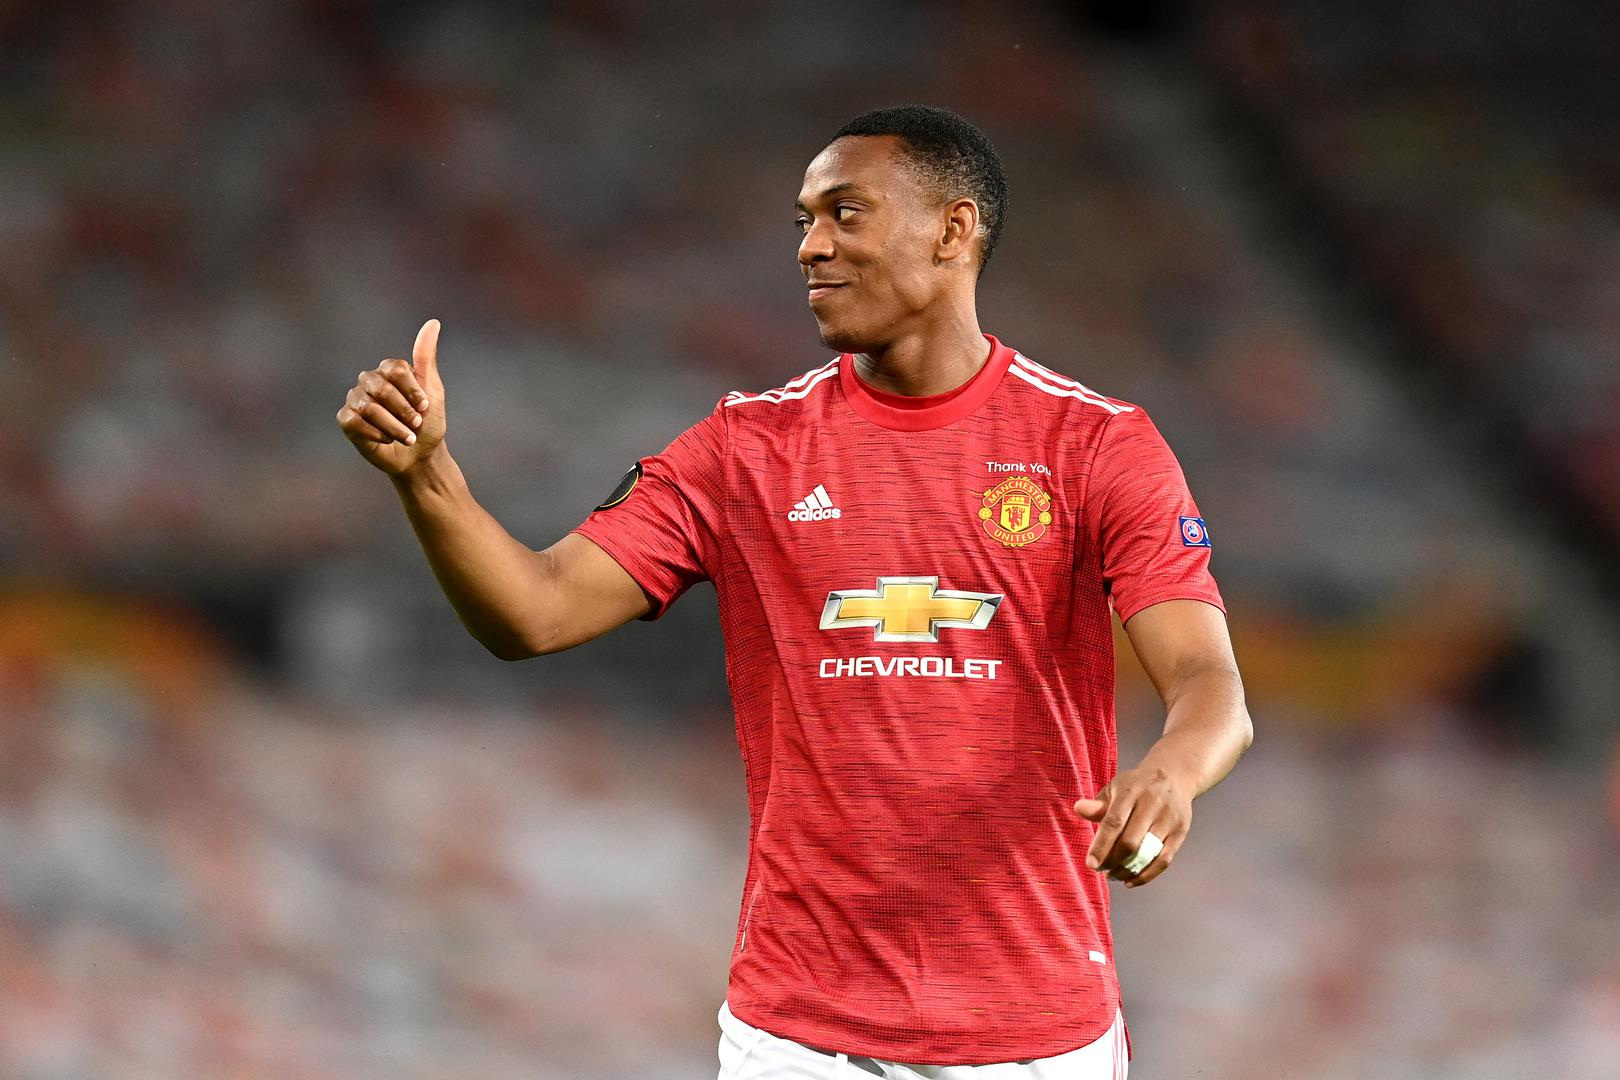 Thumbs up from striker Anthony Martial.